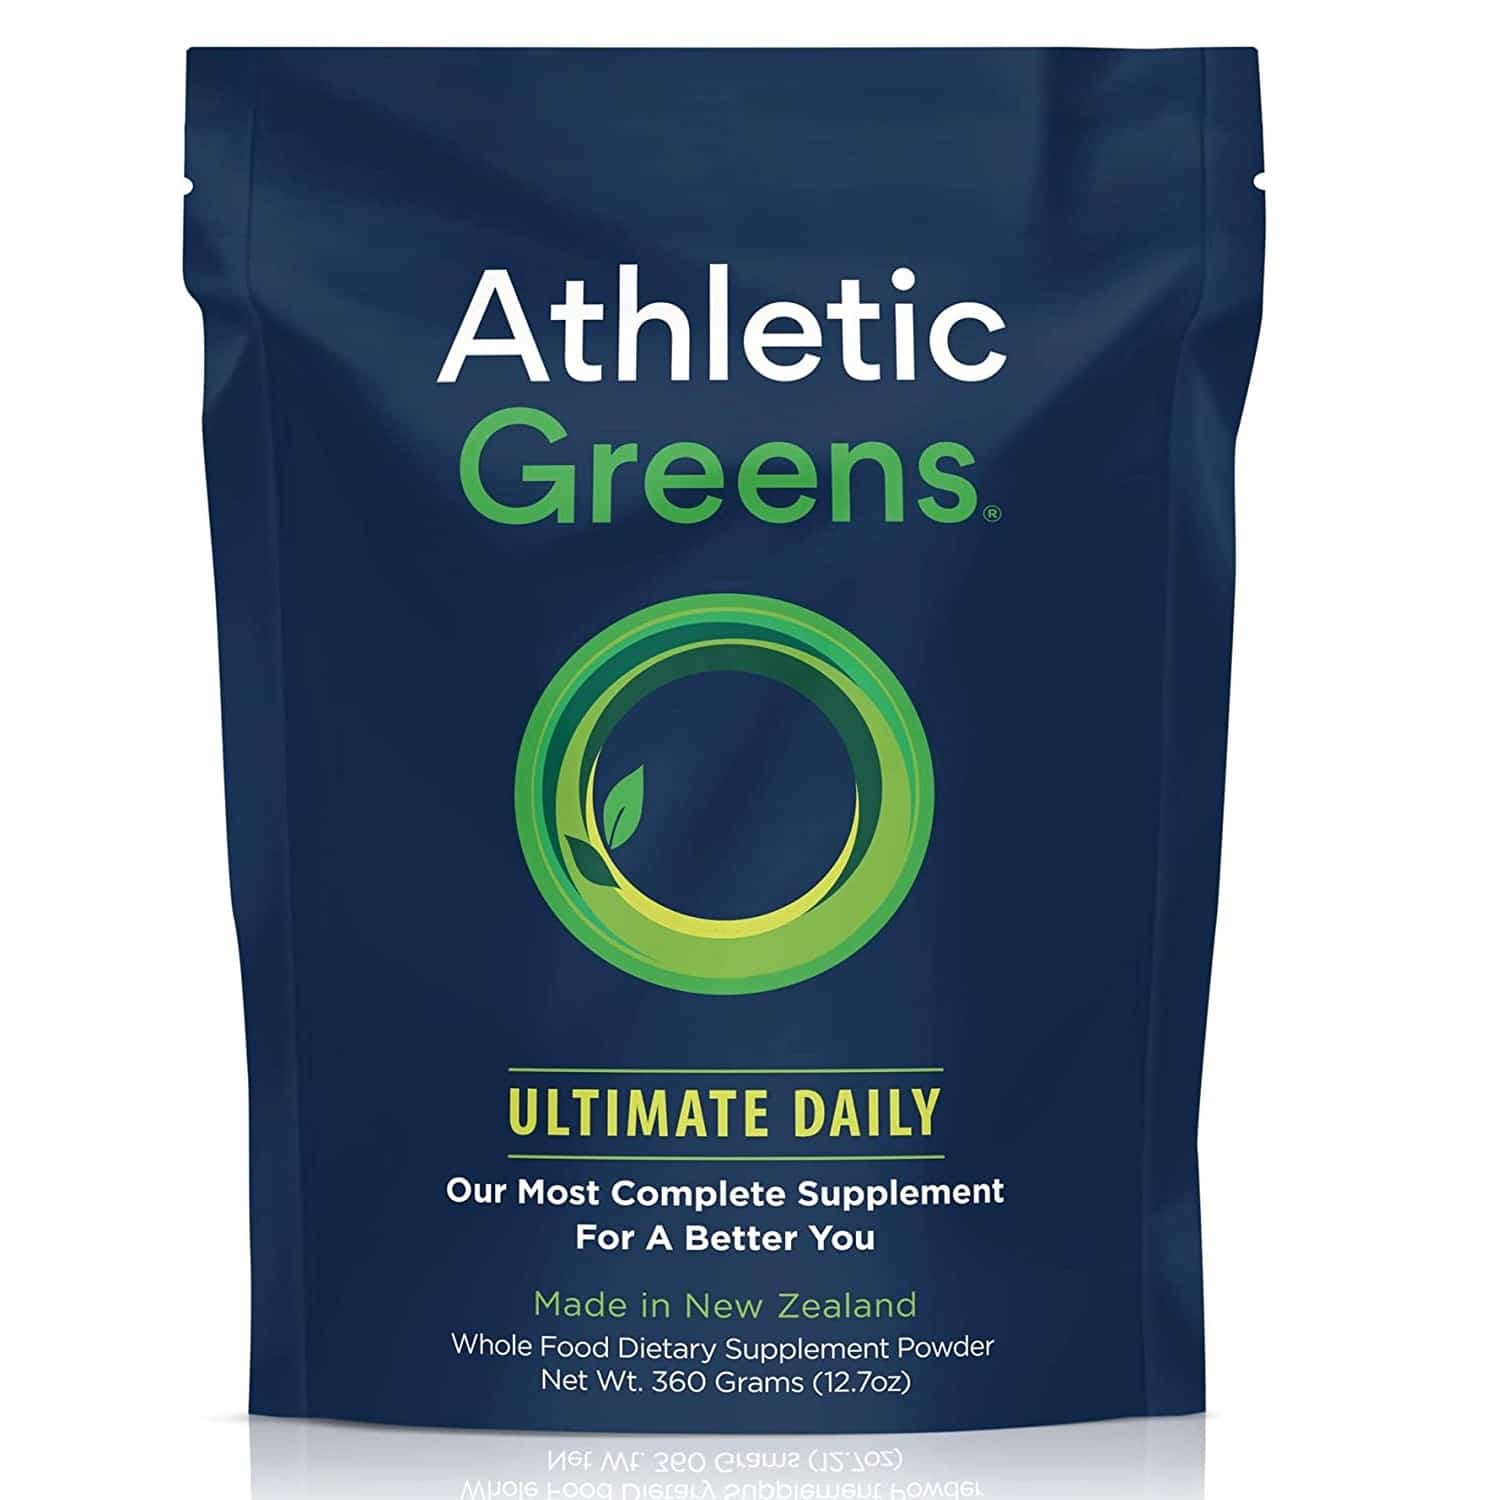 best multivitamin for men - Ultimate Daily Multivitamin Powder from Athletic Greens Review